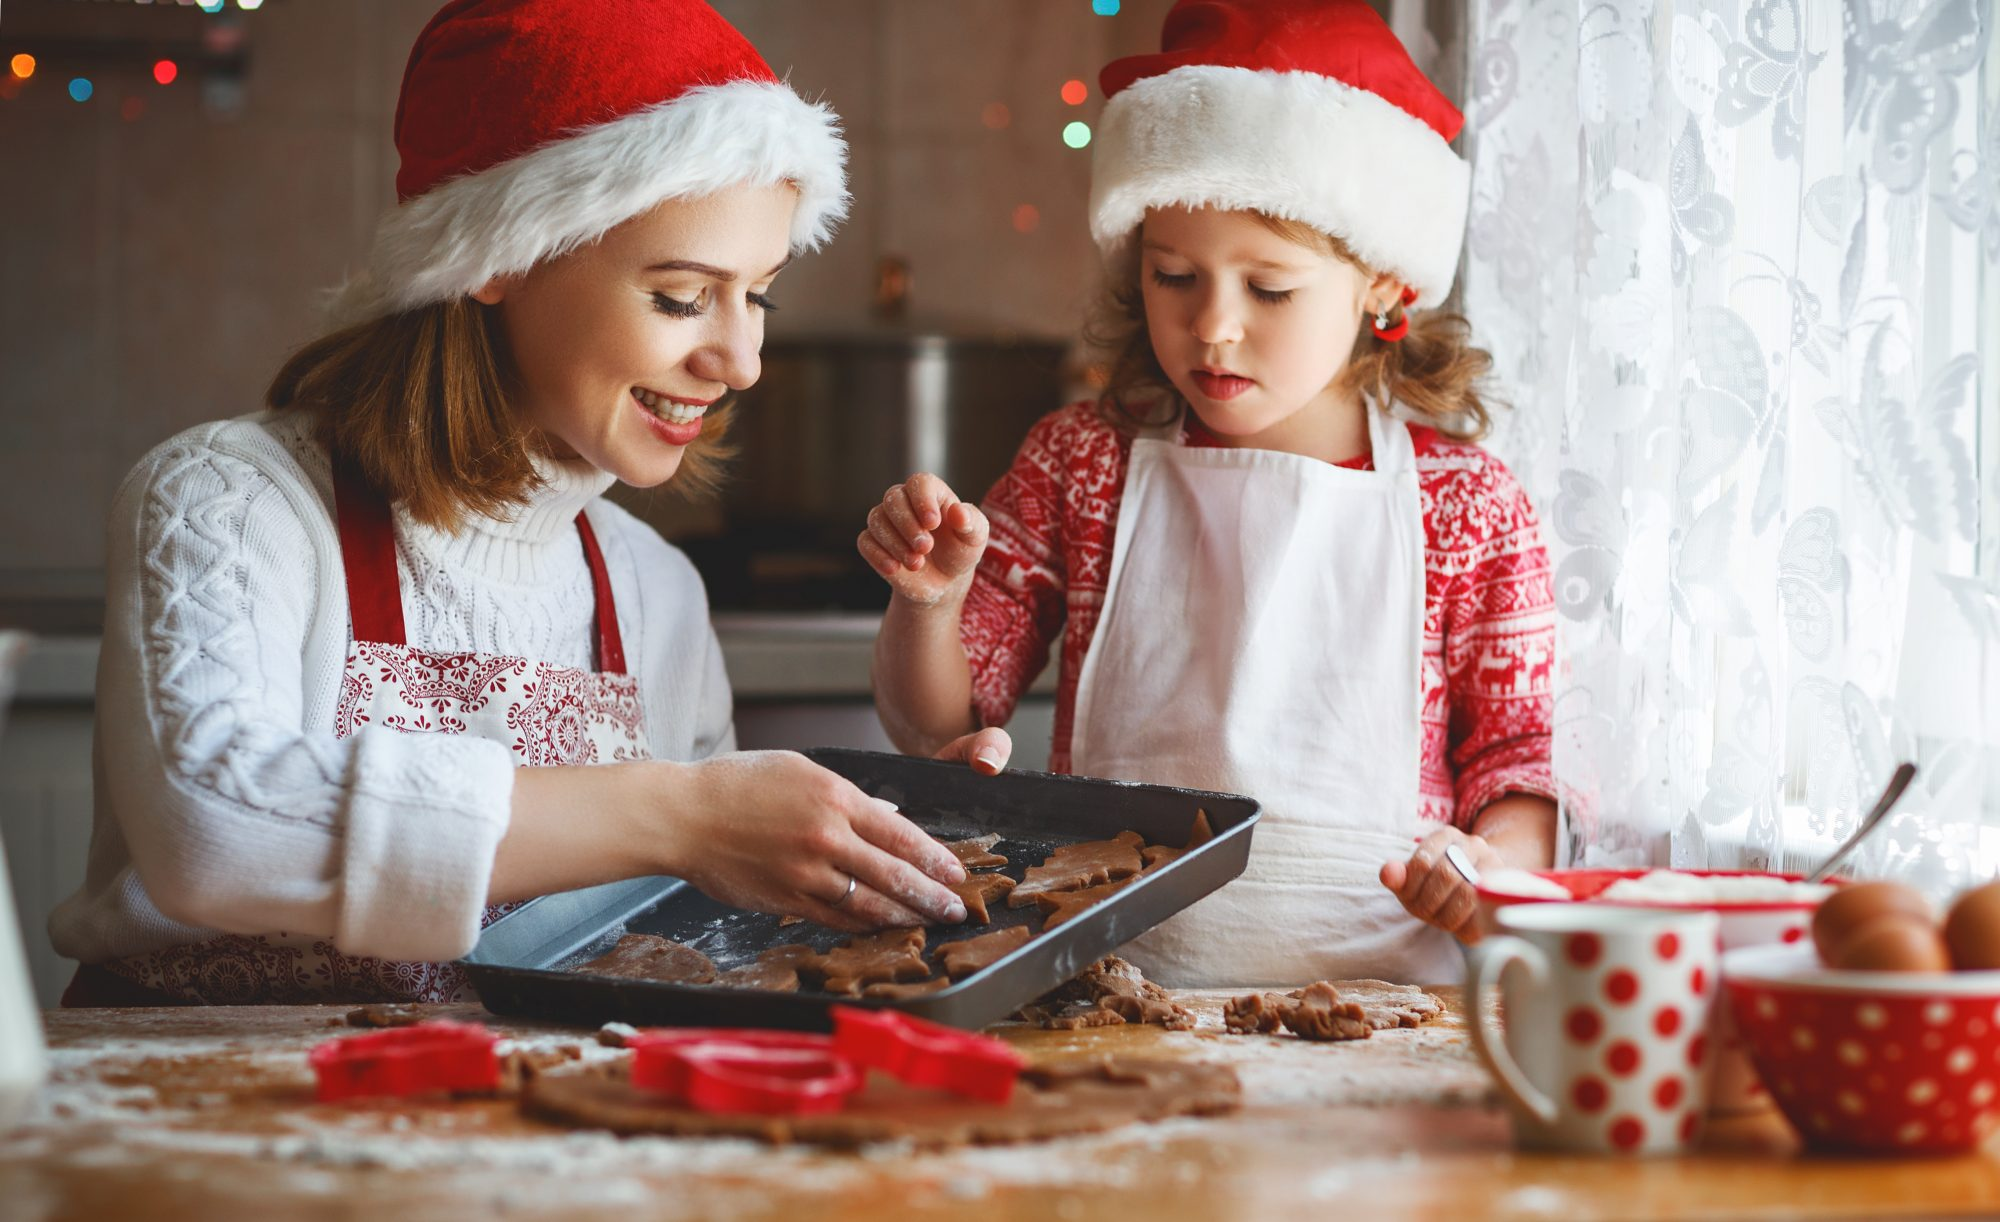 Mom and young daughter bake gingerbread cookies around the holidays.